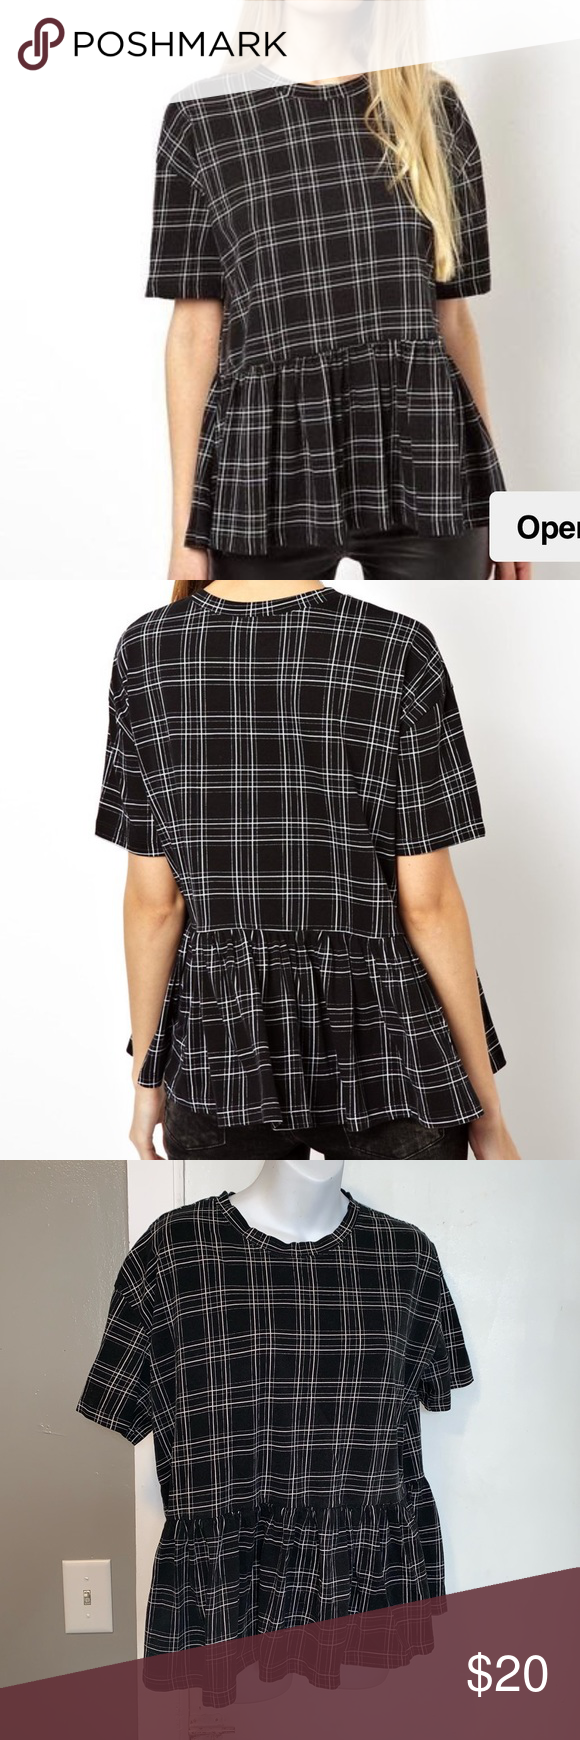 3337470da65 ASOS Oversize Peplum Check Top-8 L Black and white cotton check plaid print